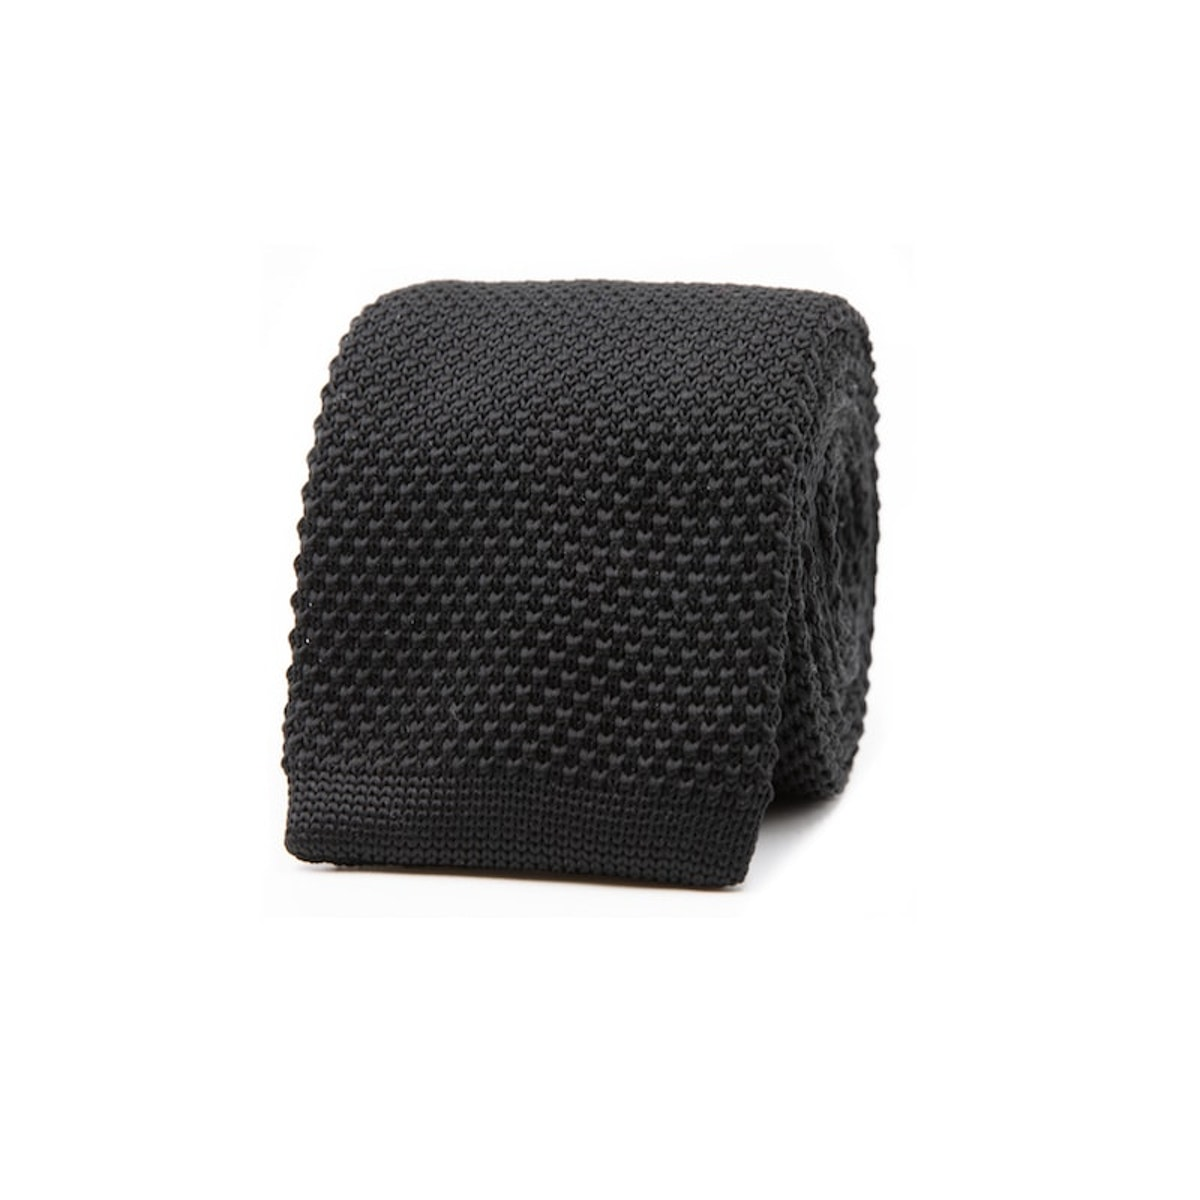 InStitchu Essentials Accessories Tie Kutti Black Knitted Square-End Tie